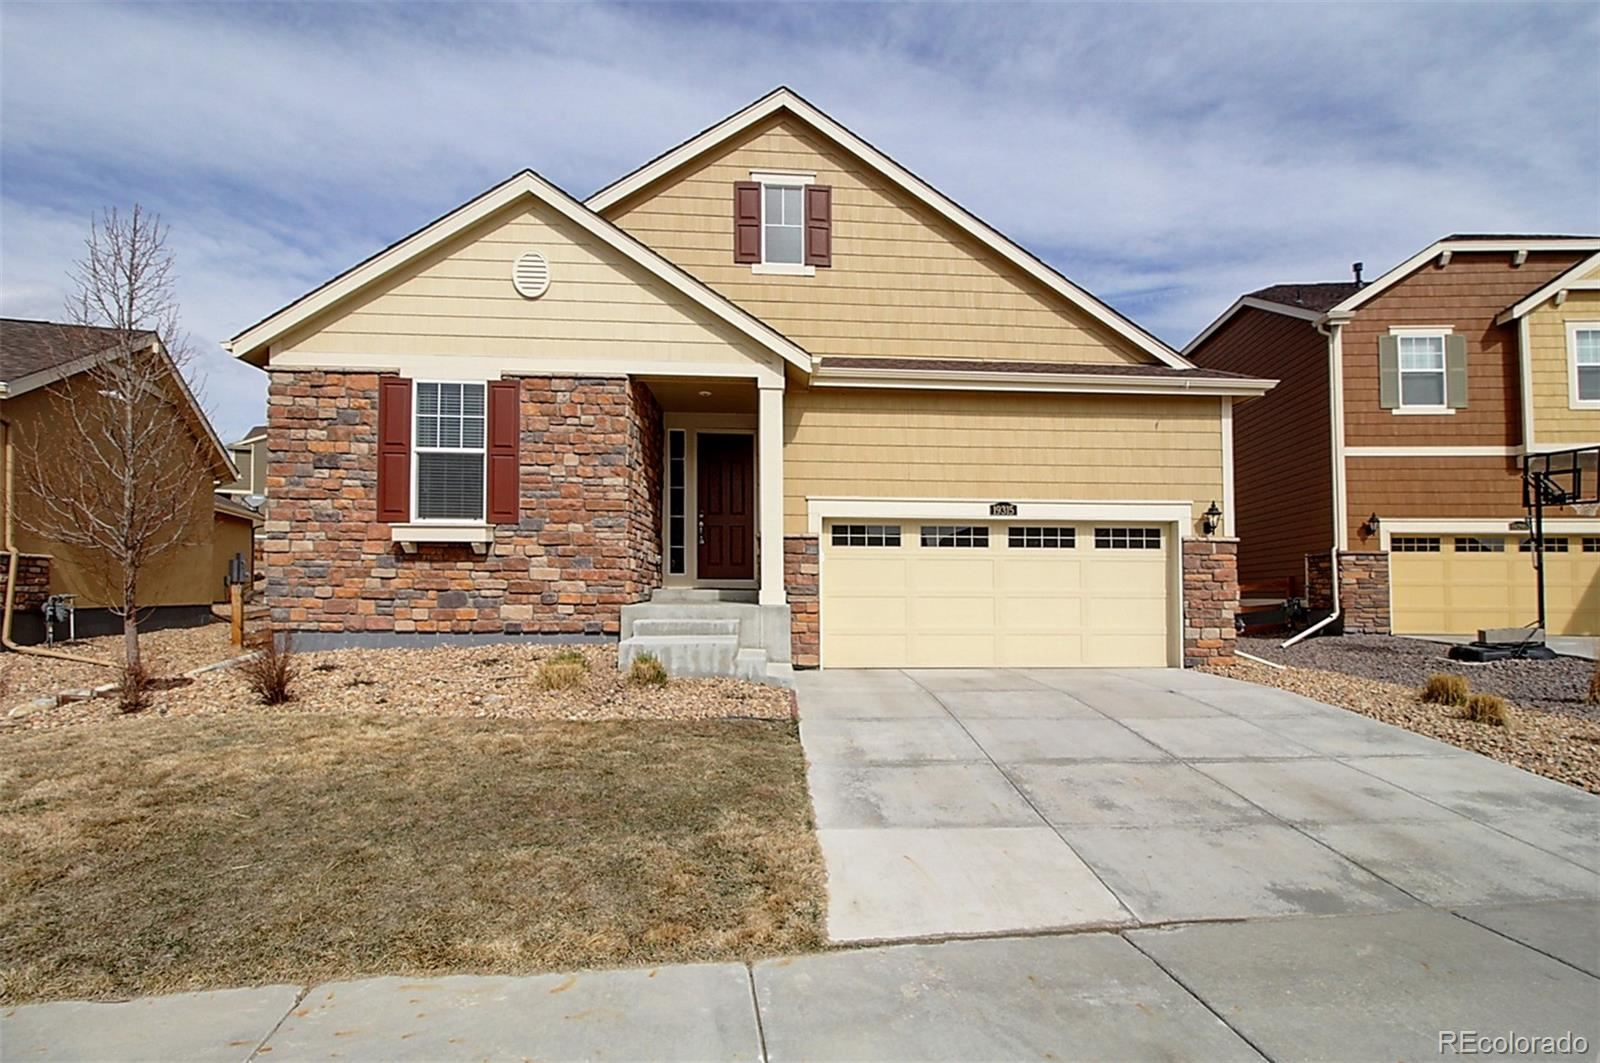 19315 W 84th Place, Arvada, CO 80007 - #: 7507698